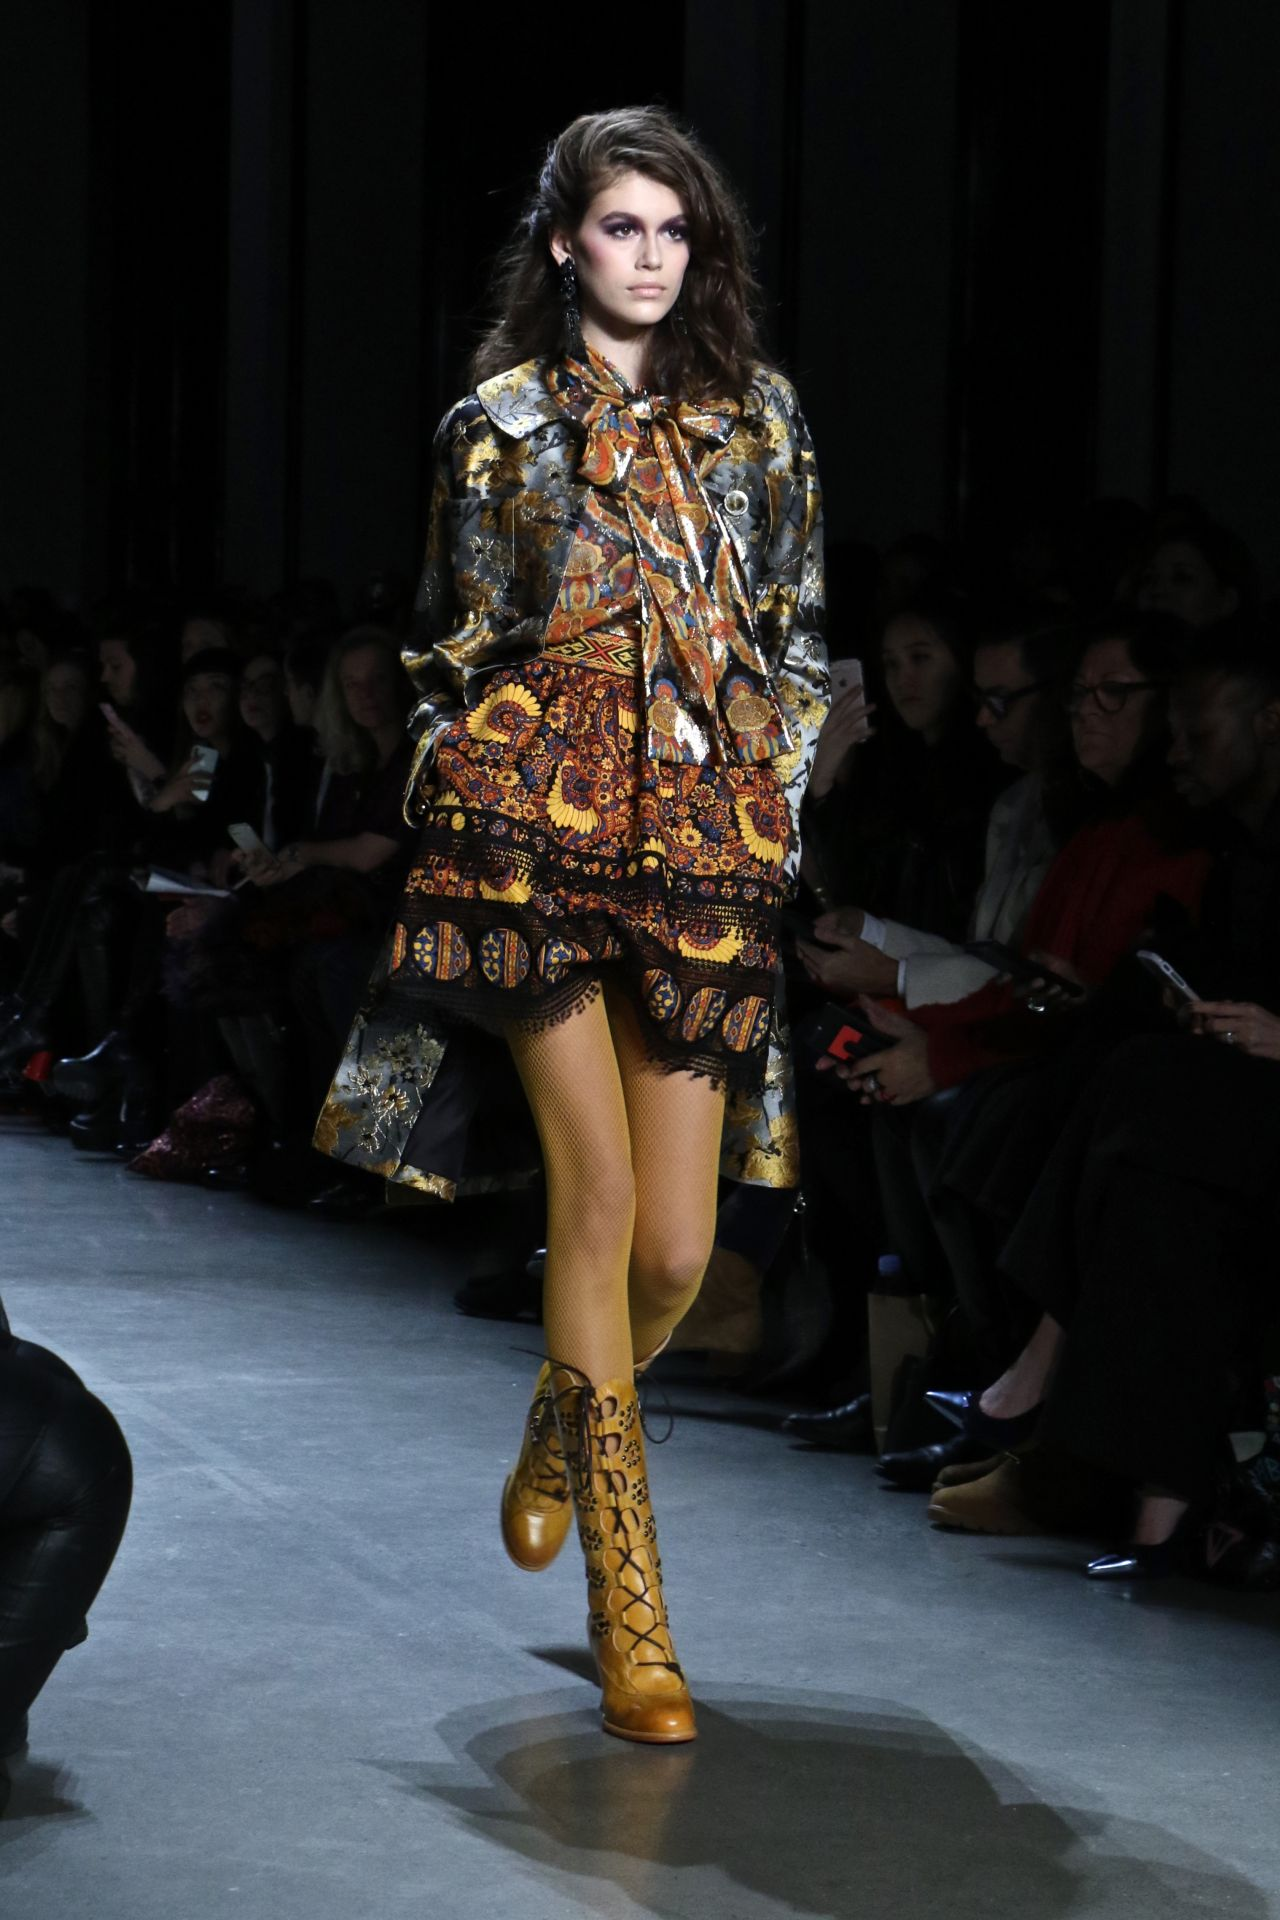 Fashion Show Coloring Pages For Adults: Kaia Gerber Walks Anna Sui Fashion Show In NYC